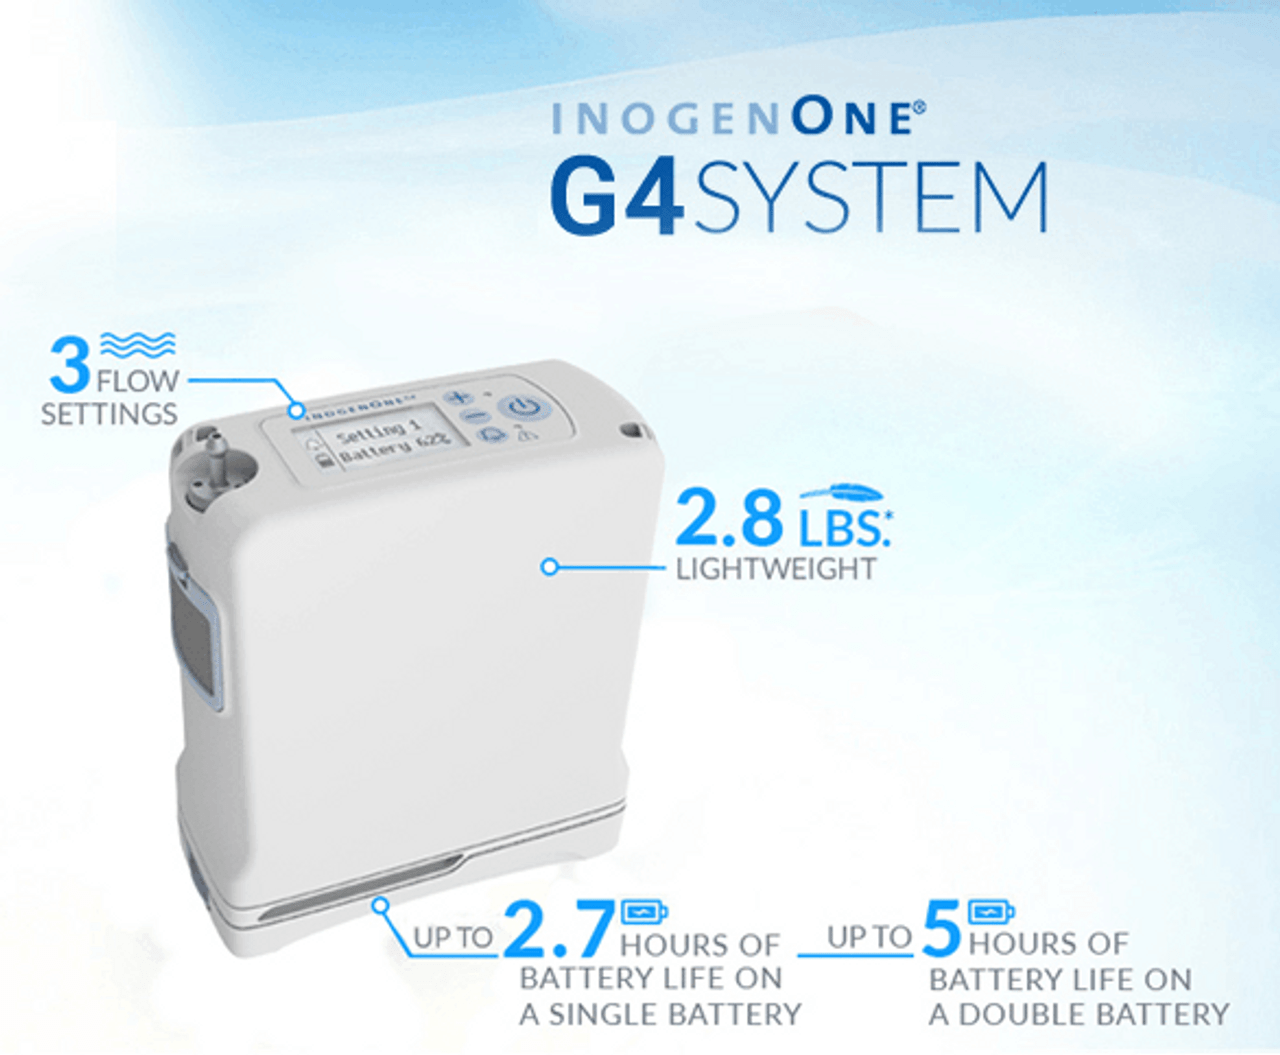 Inogen One G4 portable oxygen system specifications